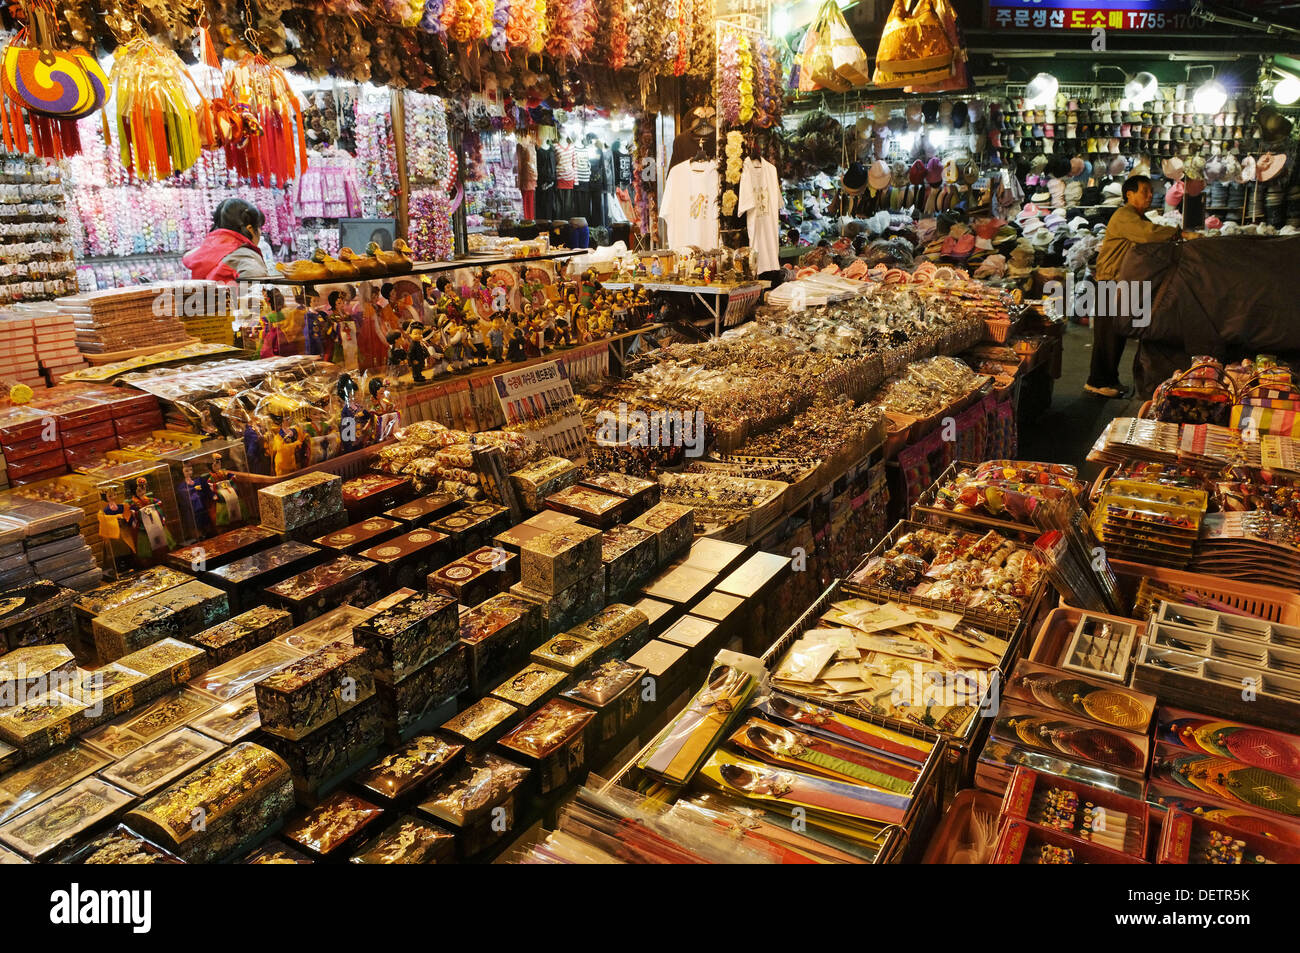 typical korean gift shop at a nightmarket in Seoul, South Korea, Asia - Stock Image